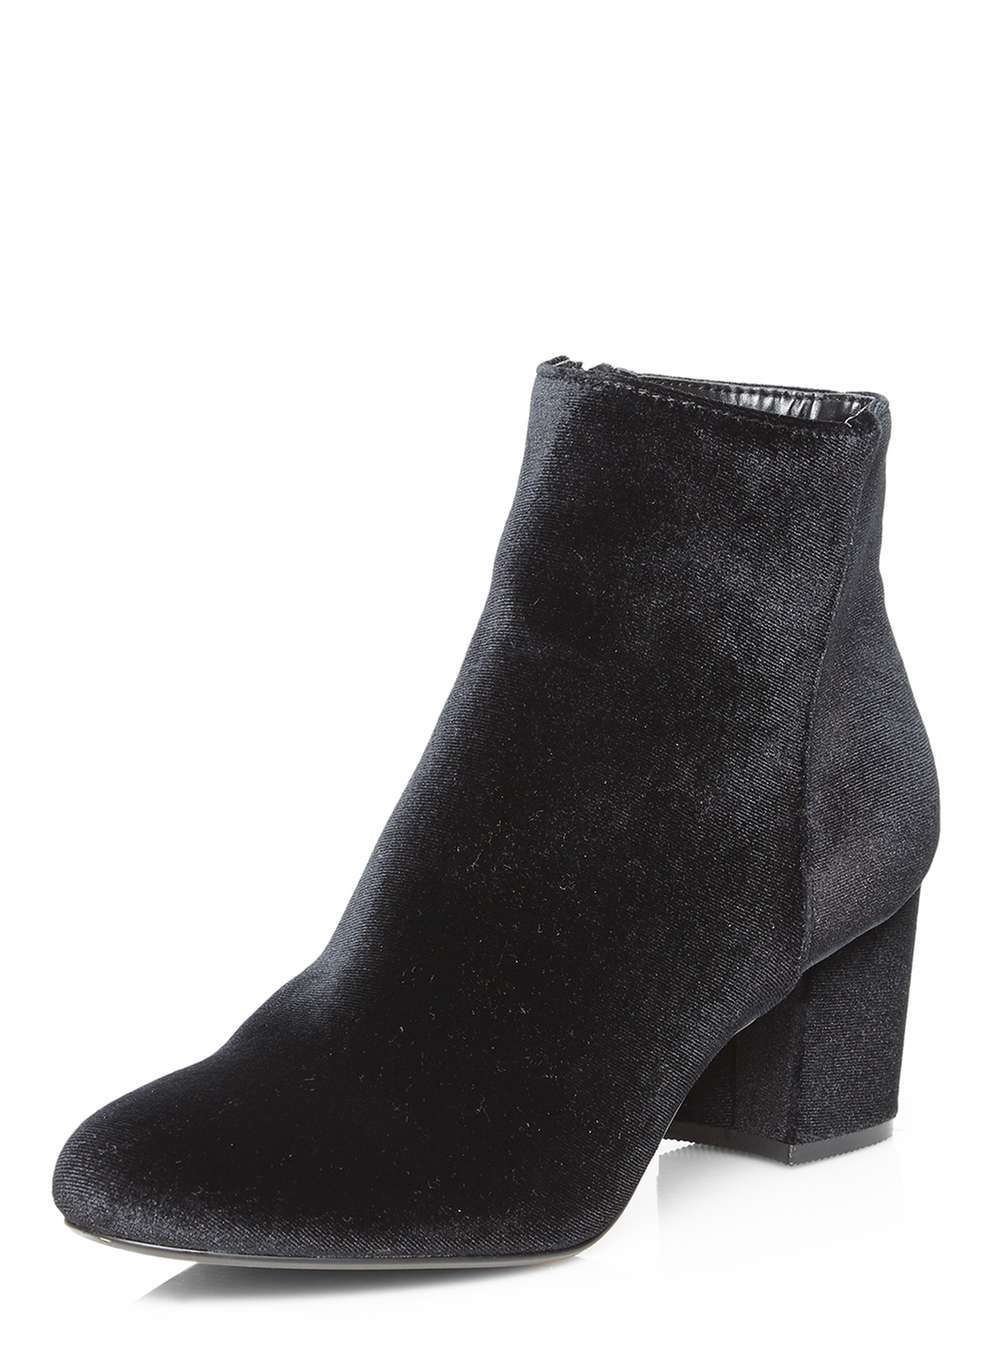 Womens Black Velvet 'a Lister' Boots Black - predominant colour: black; occasions: casual; material: velvet; heel height: mid; heel: block; toe: round toe; boot length: ankle boot; style: standard; finish: plain; pattern: plain; season: a/w 2016; wardrobe: highlight